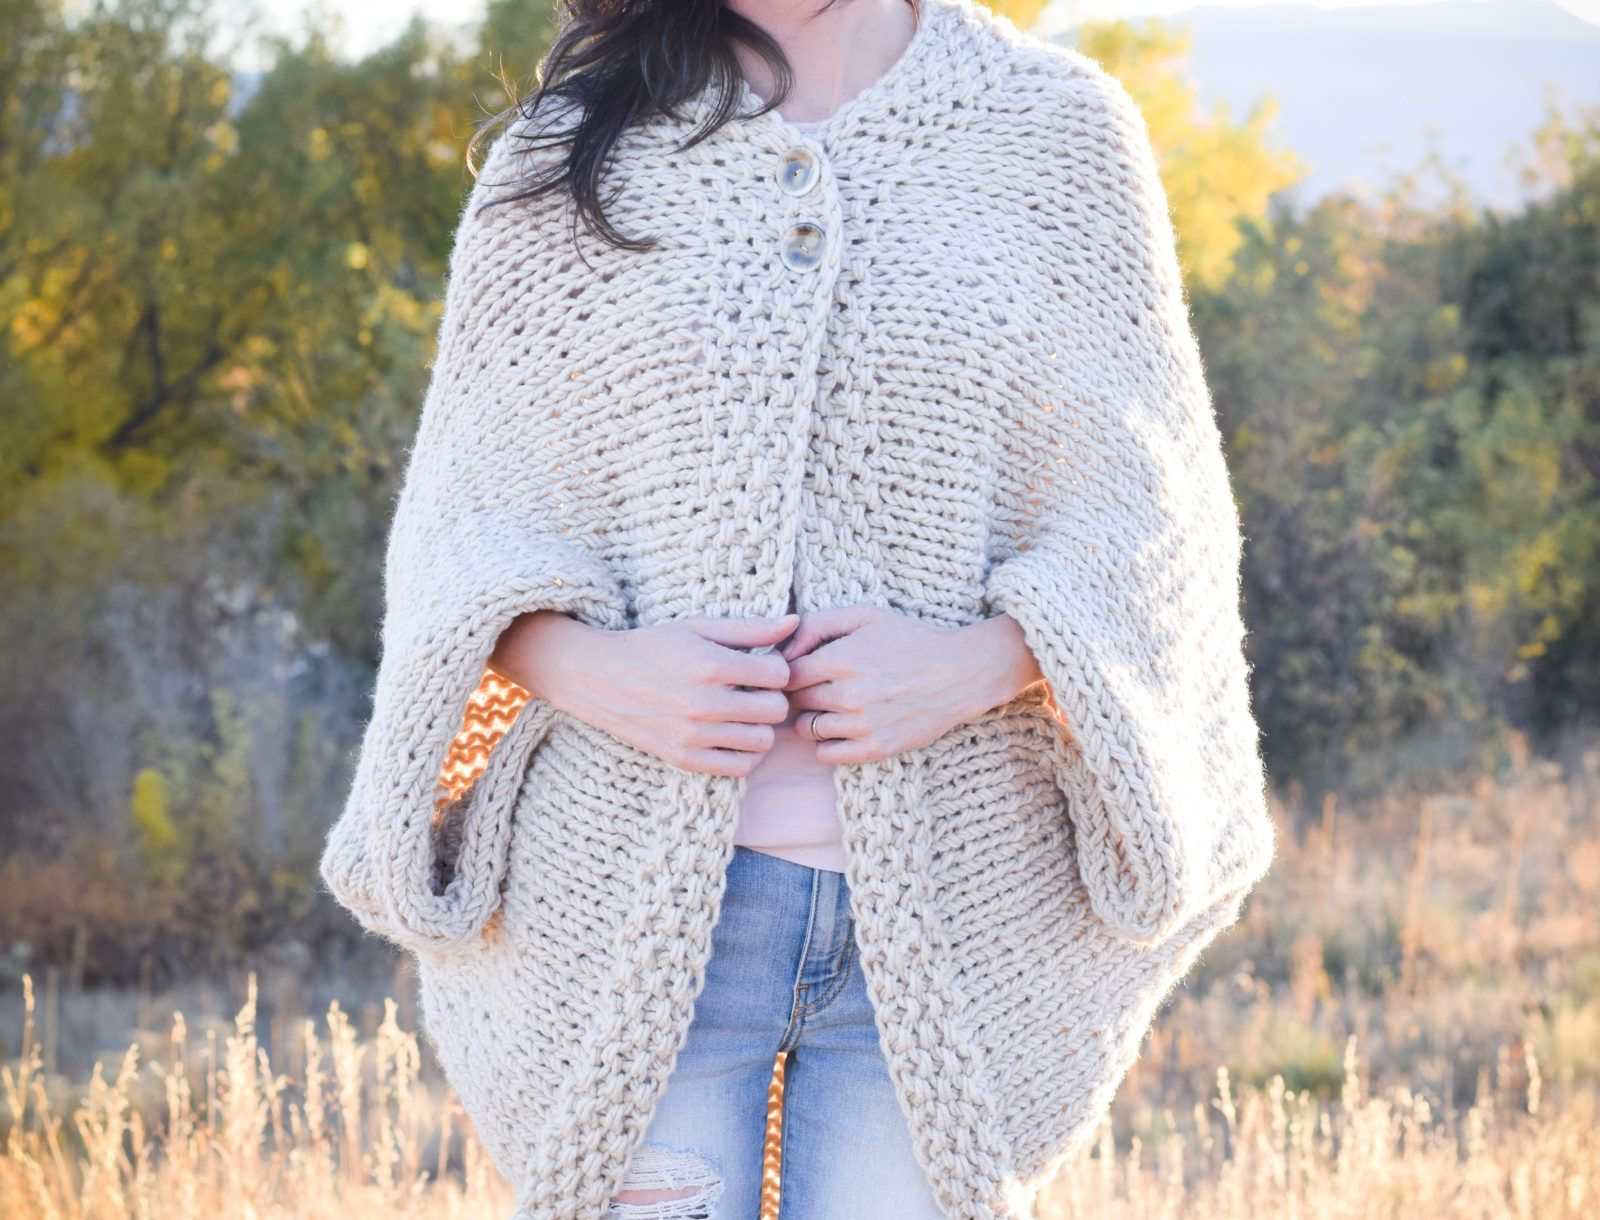 Easy knit blanket sweater lb3 knit pinterest blanket easy free pattern for an easy knit blanket sweater nice for a winter quick throw on or comfort someone who is unwell perhaps to wear in bed bankloansurffo Choice Image